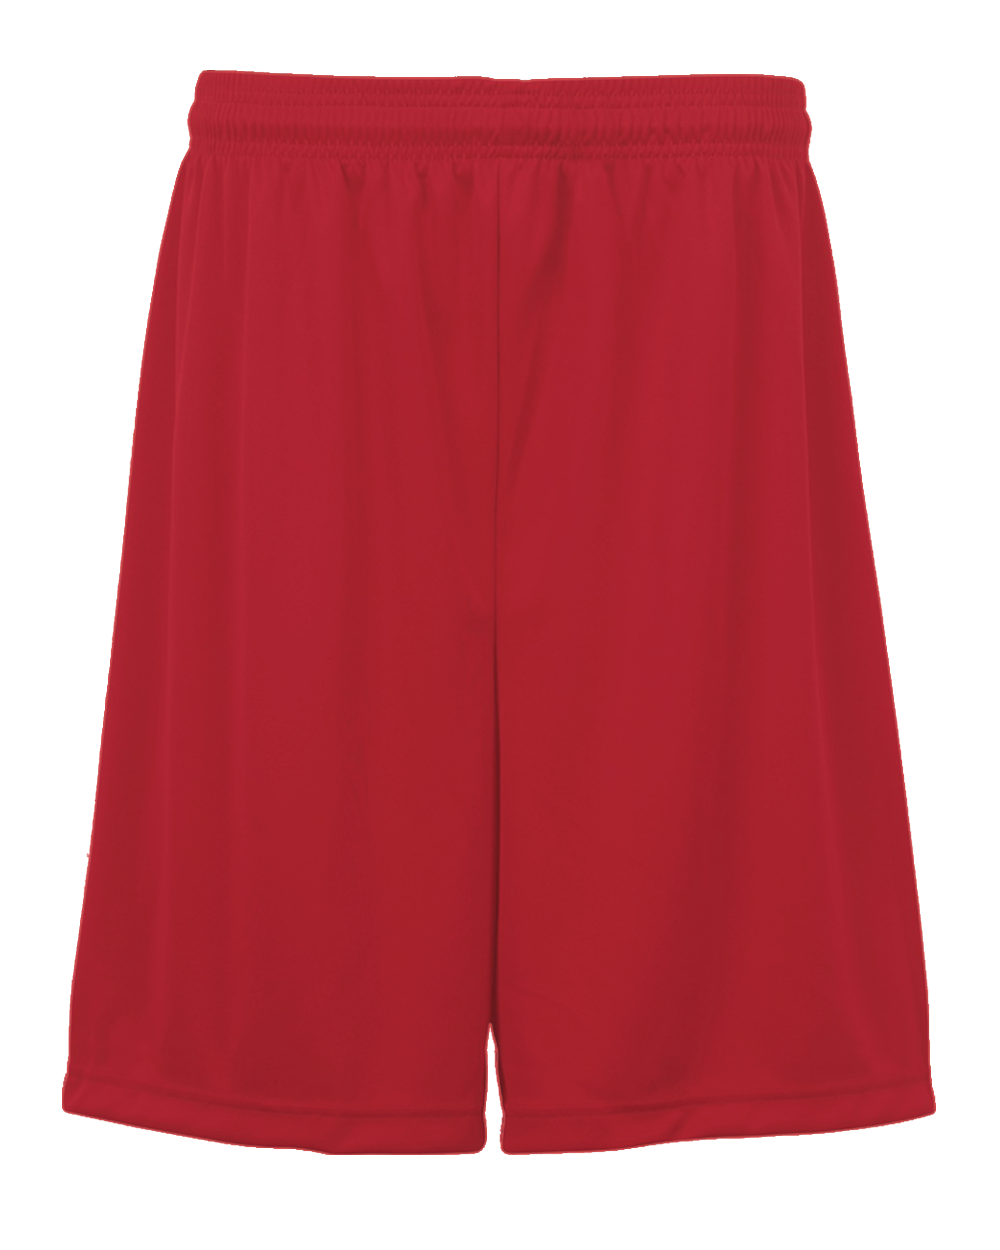 C2 Performance 7 Inch Short - Red